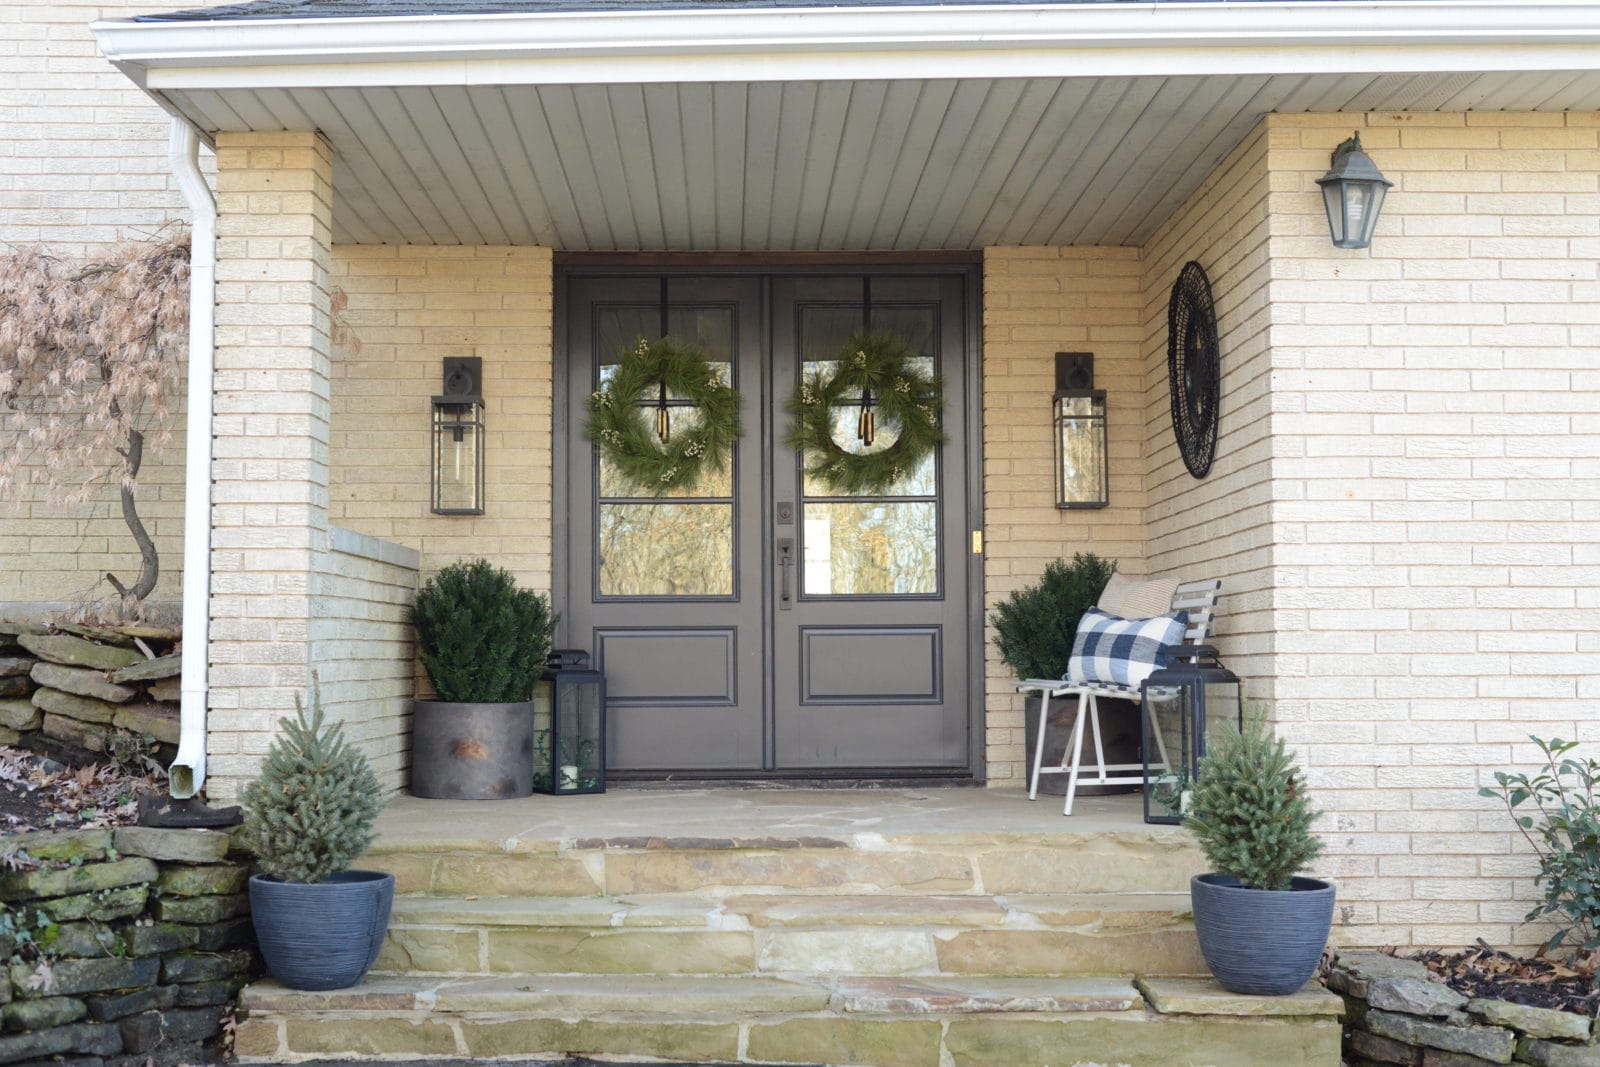 Front porch view with stone floor, black front doors and wreaths